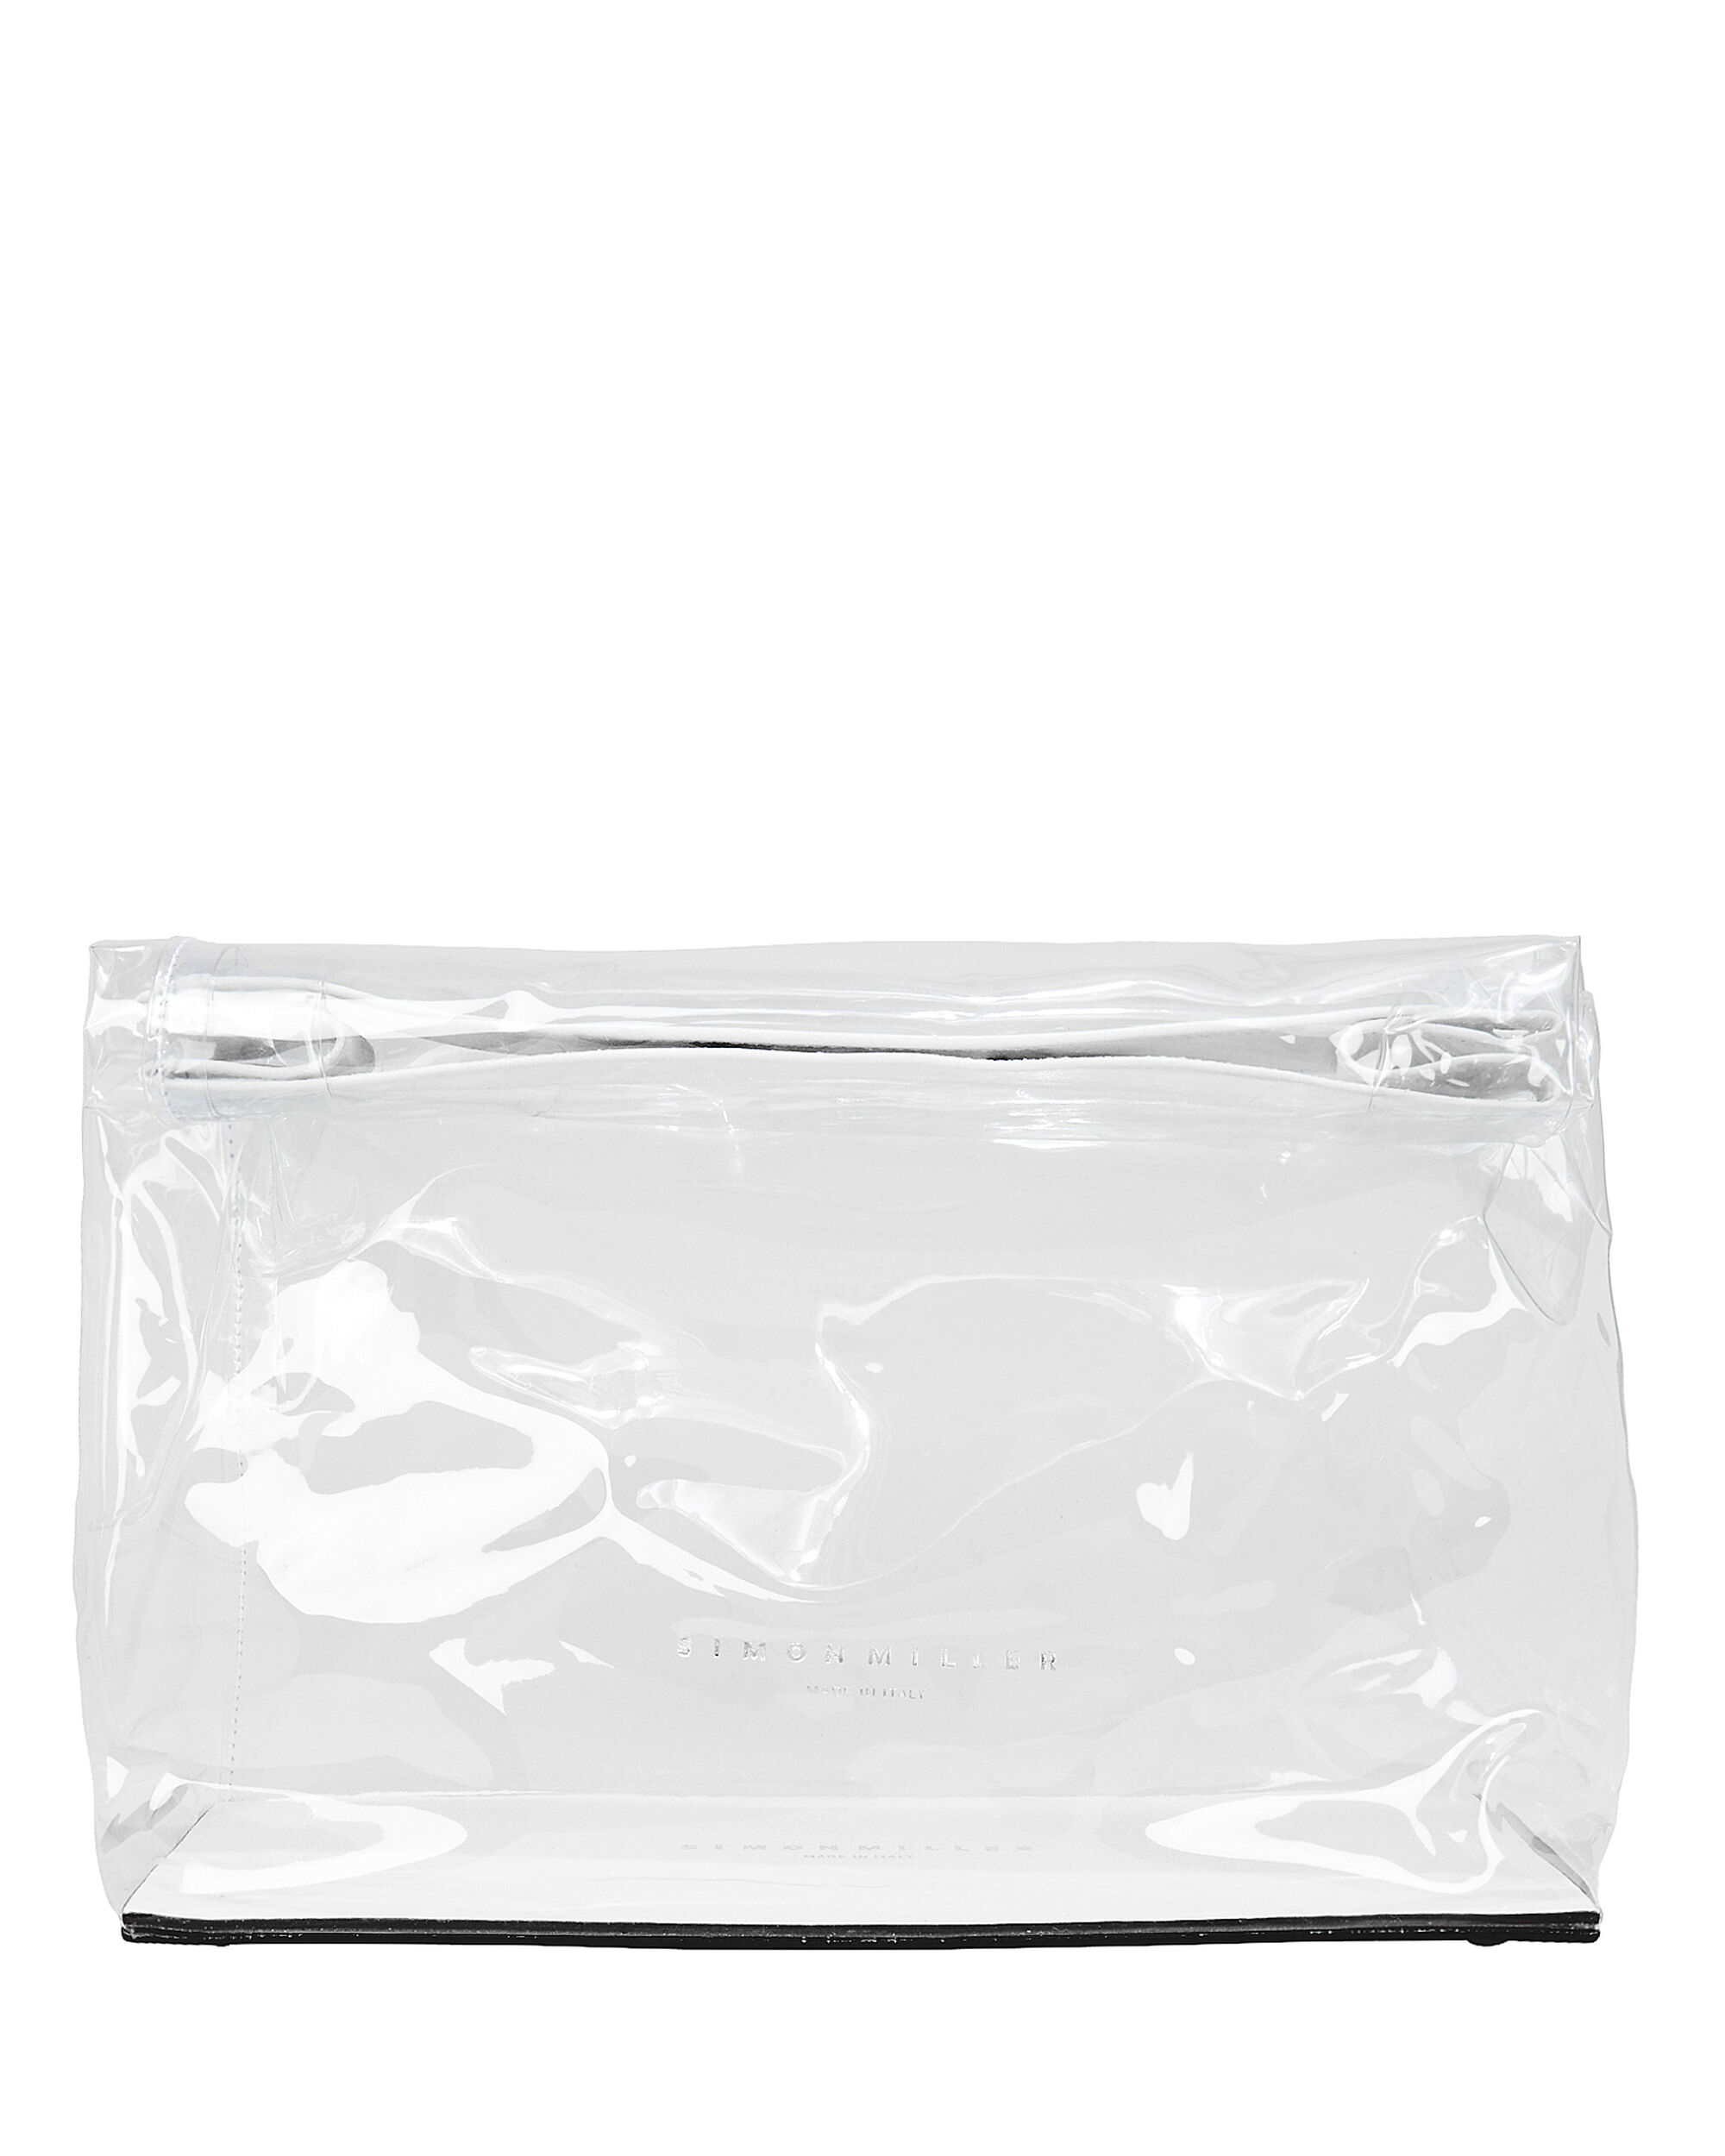 Clear Plastic Lunchbag, CLEAR, hi-res